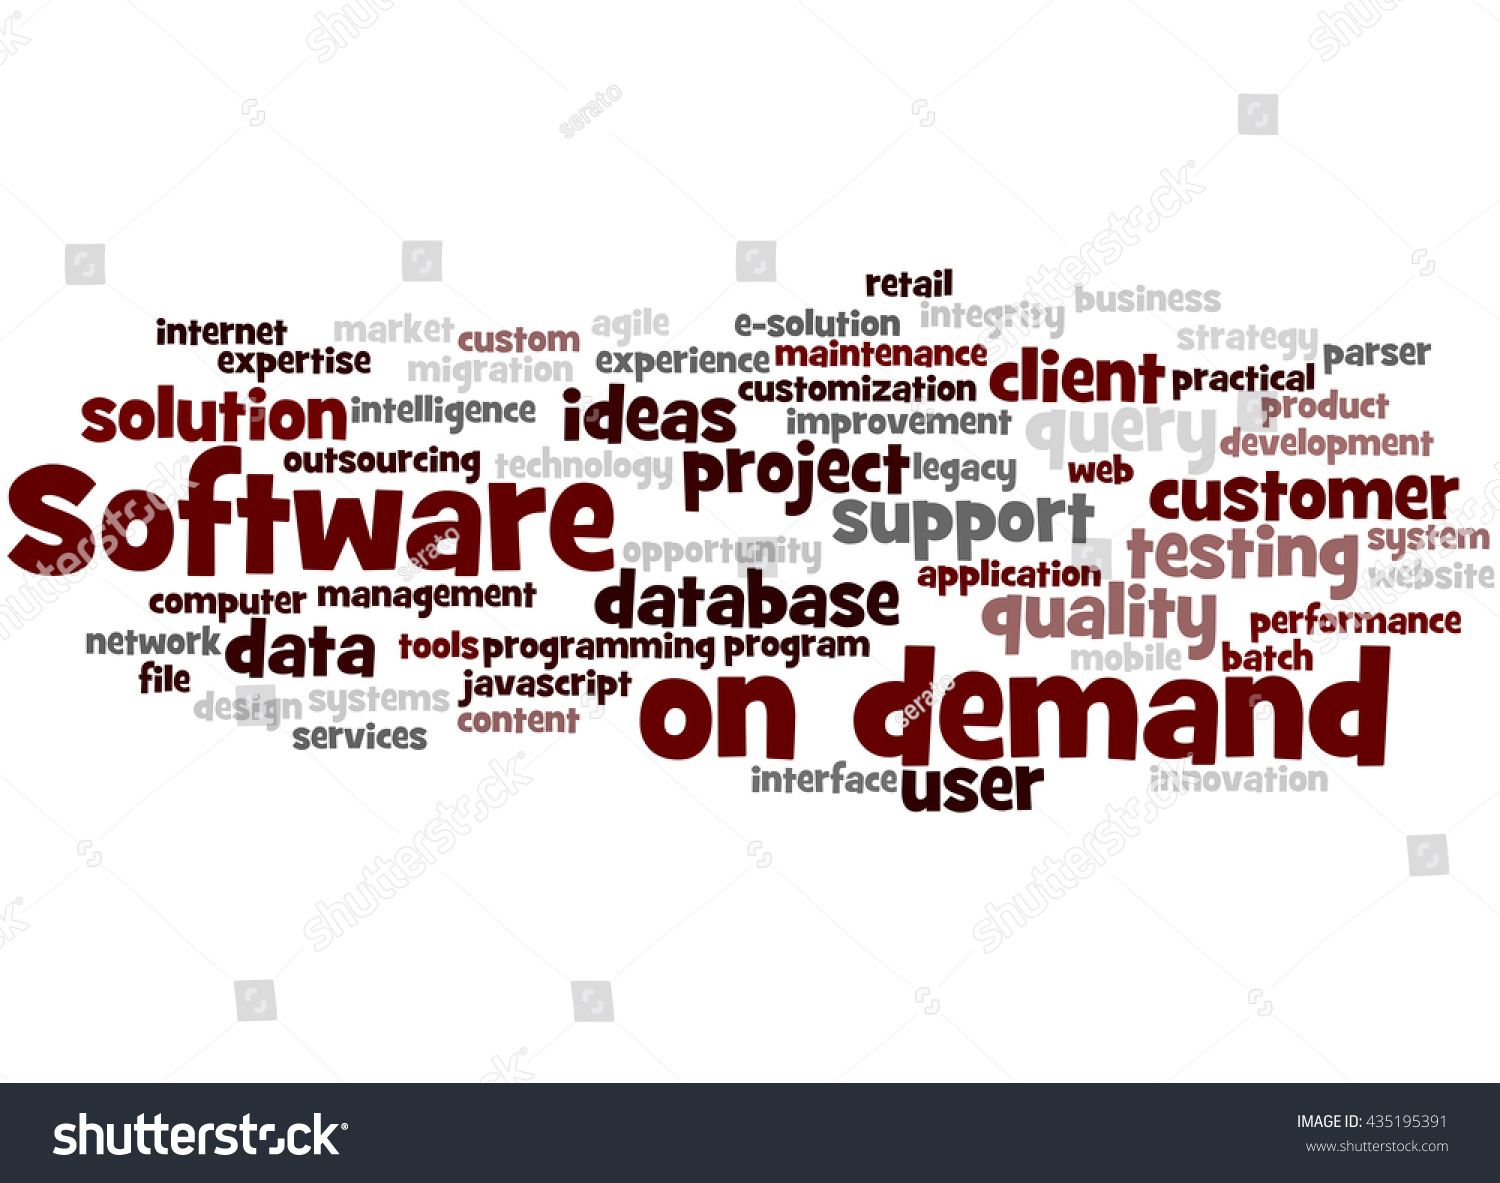 Software On Demand Word Cloud Concept Stock Illustration